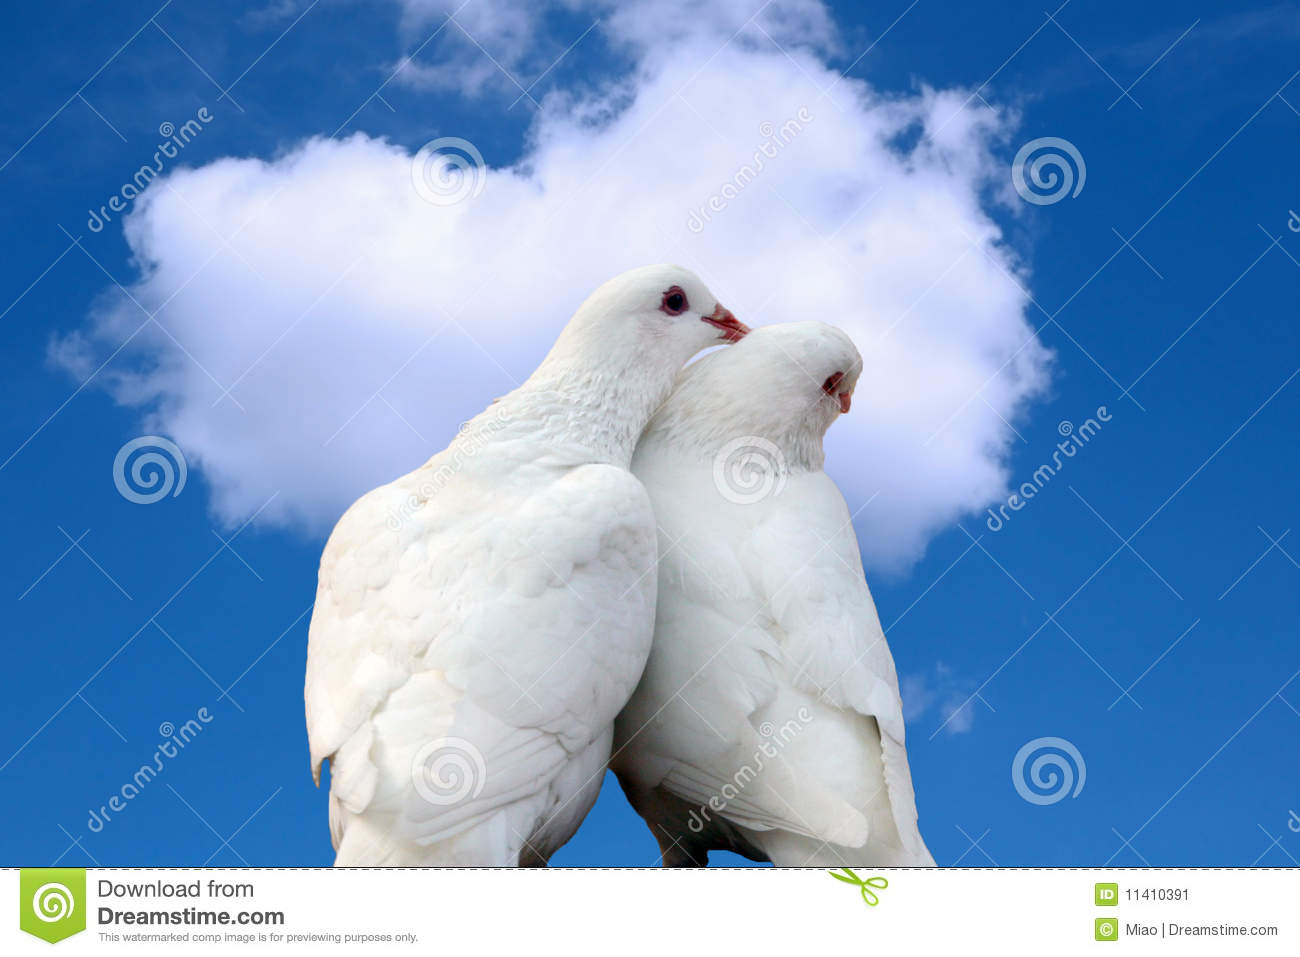 Cute Valentine Pc Wallpaper Doves In Love Stock Image Image 11410391